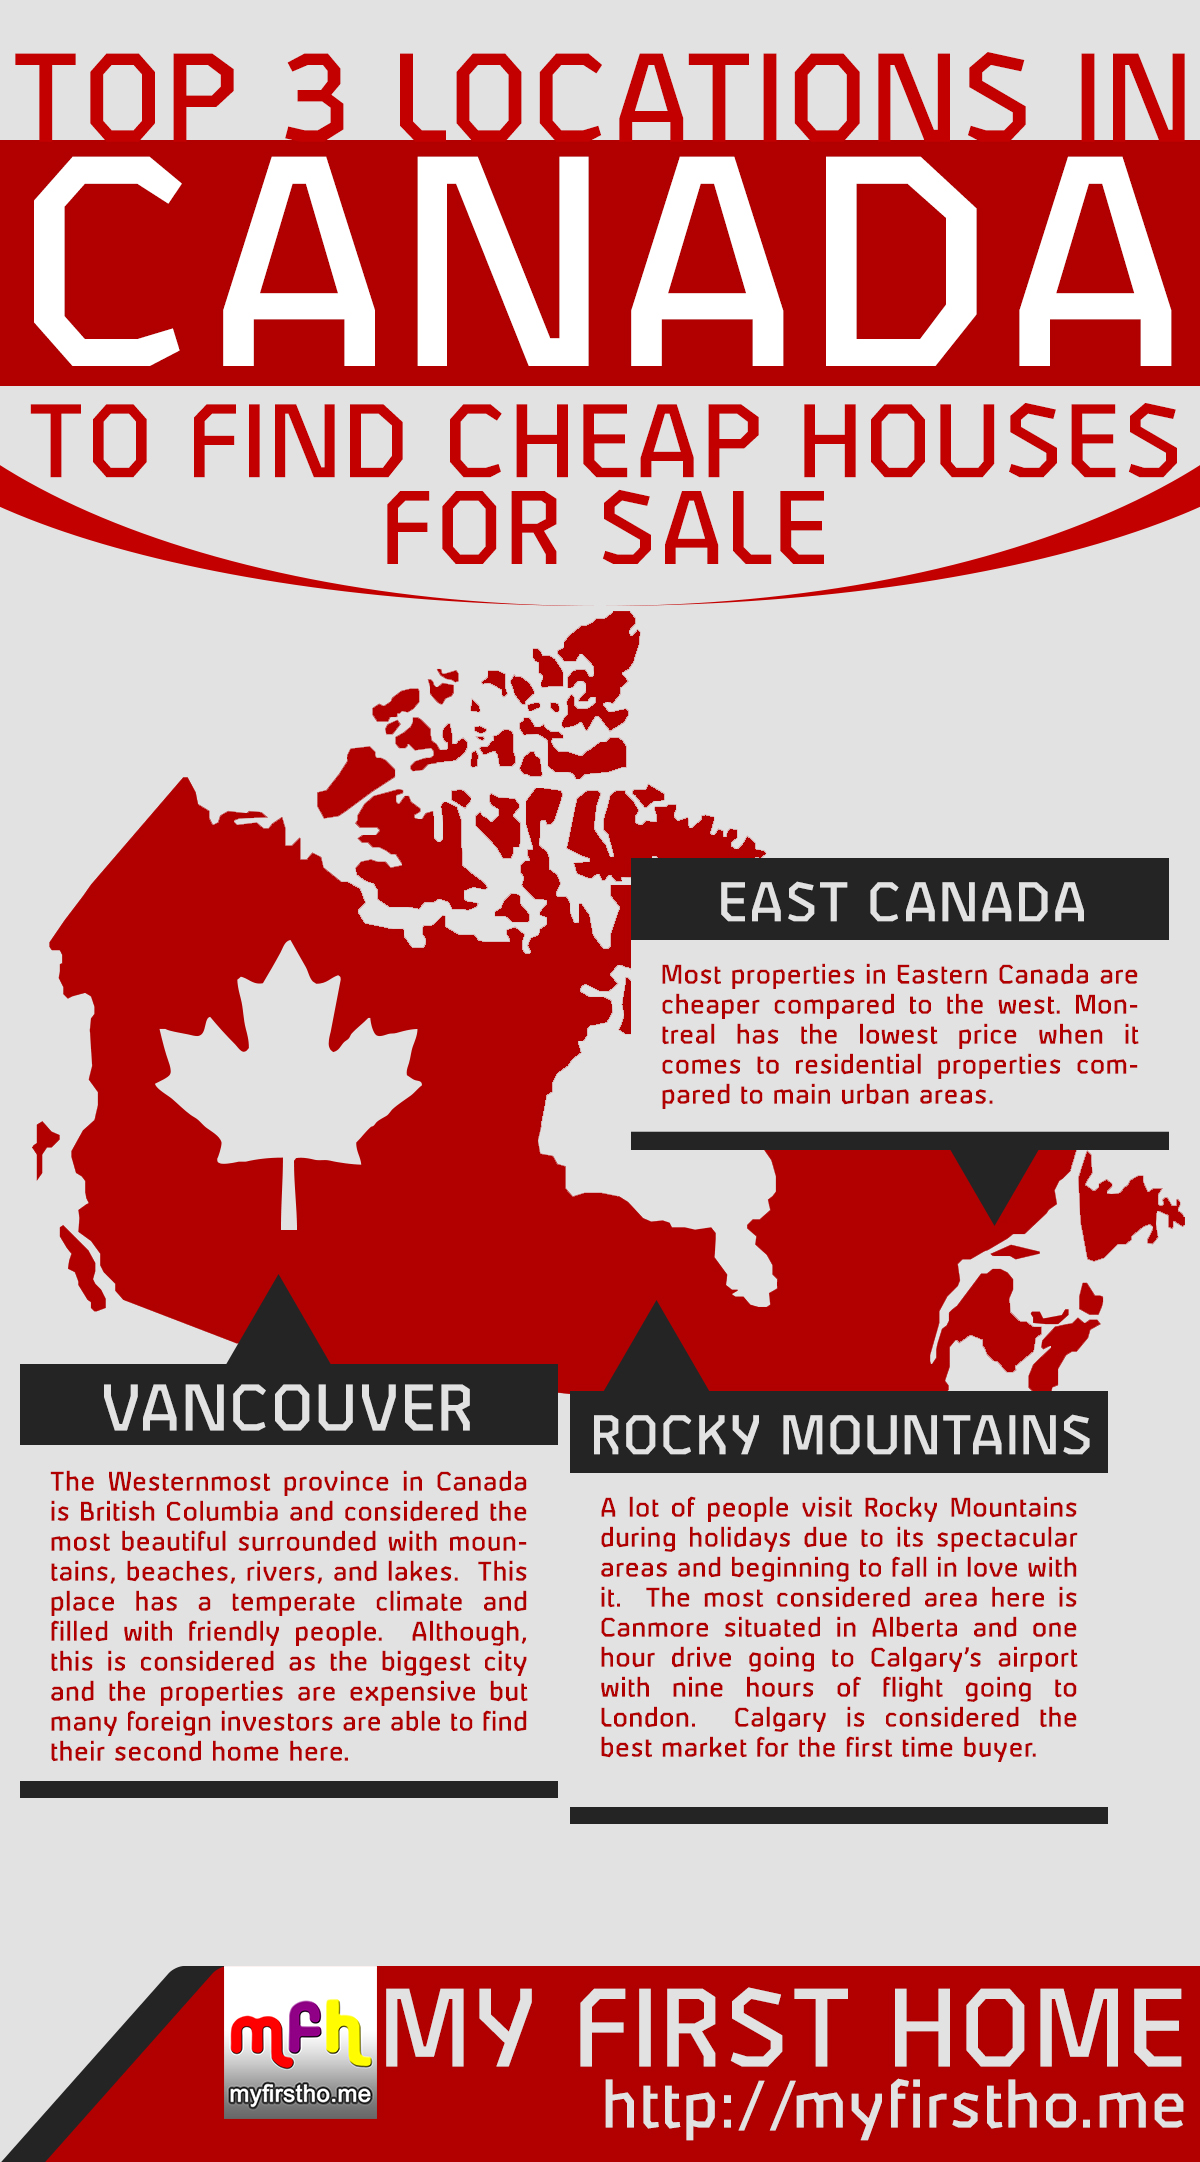 Top 3 Locations in Canada To Find Cheap Houses For Sale